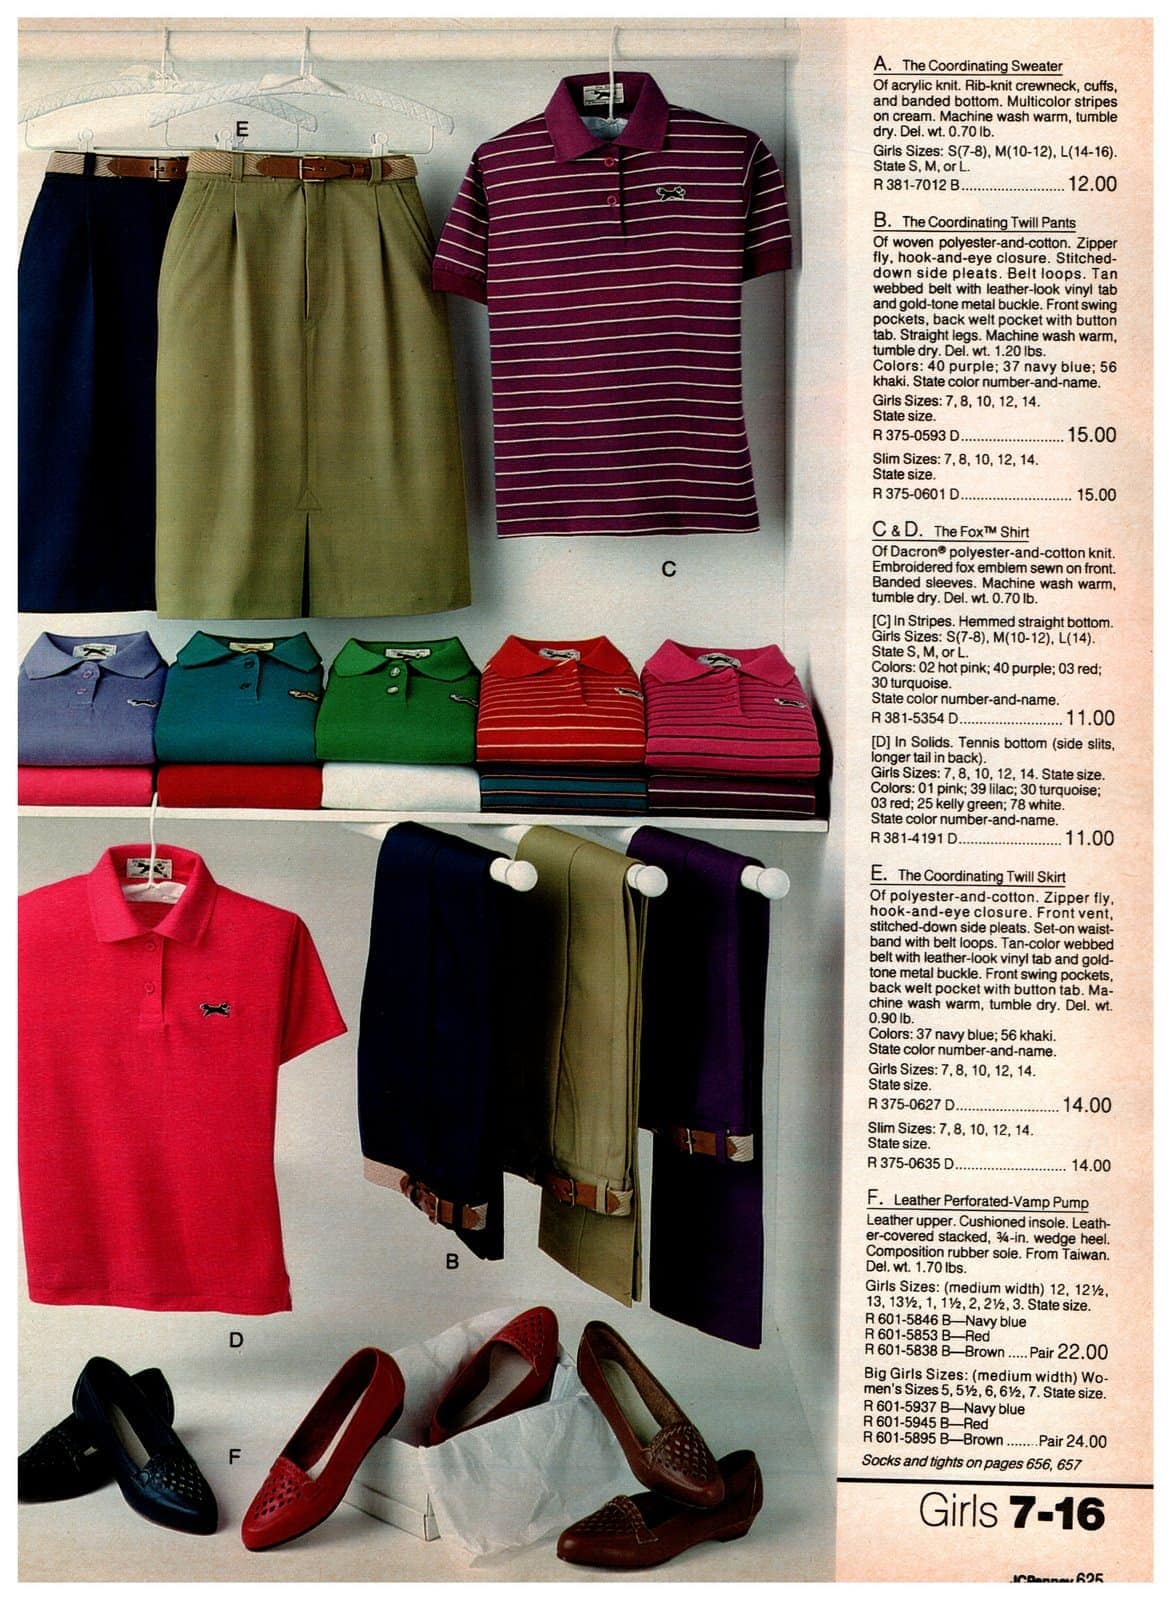 Preppy polo shirts, twill pants and skirts - plus leather perforated-vamp pumps